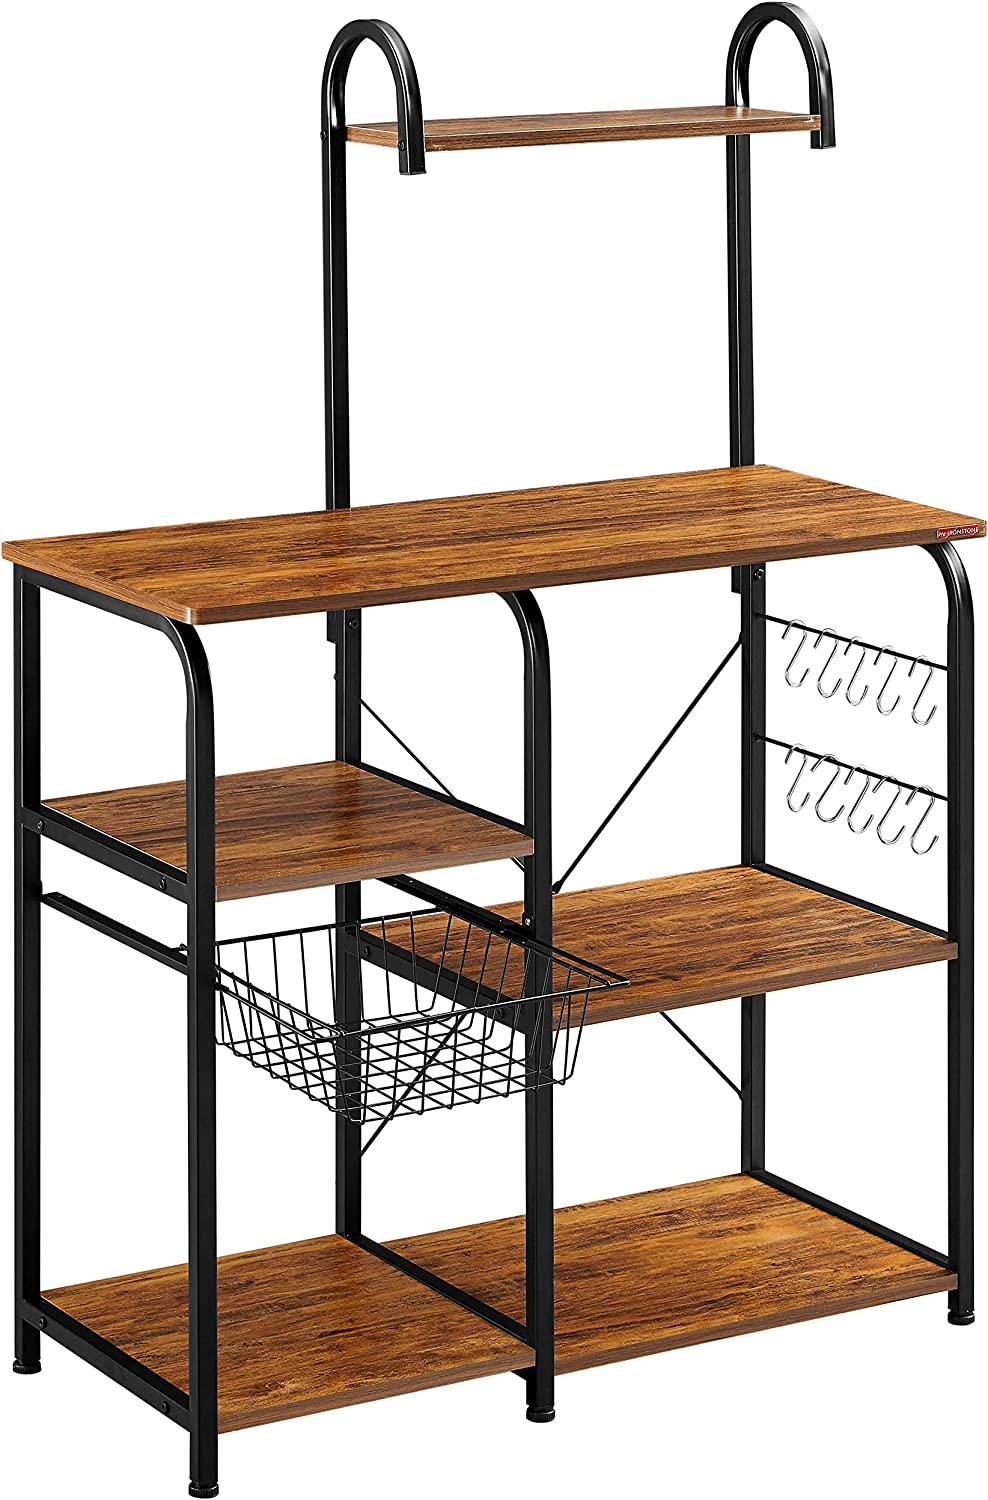 Mr IRONSTONE Vintage Kitchen Bakers Rack Utility Storage Shelf 35.5